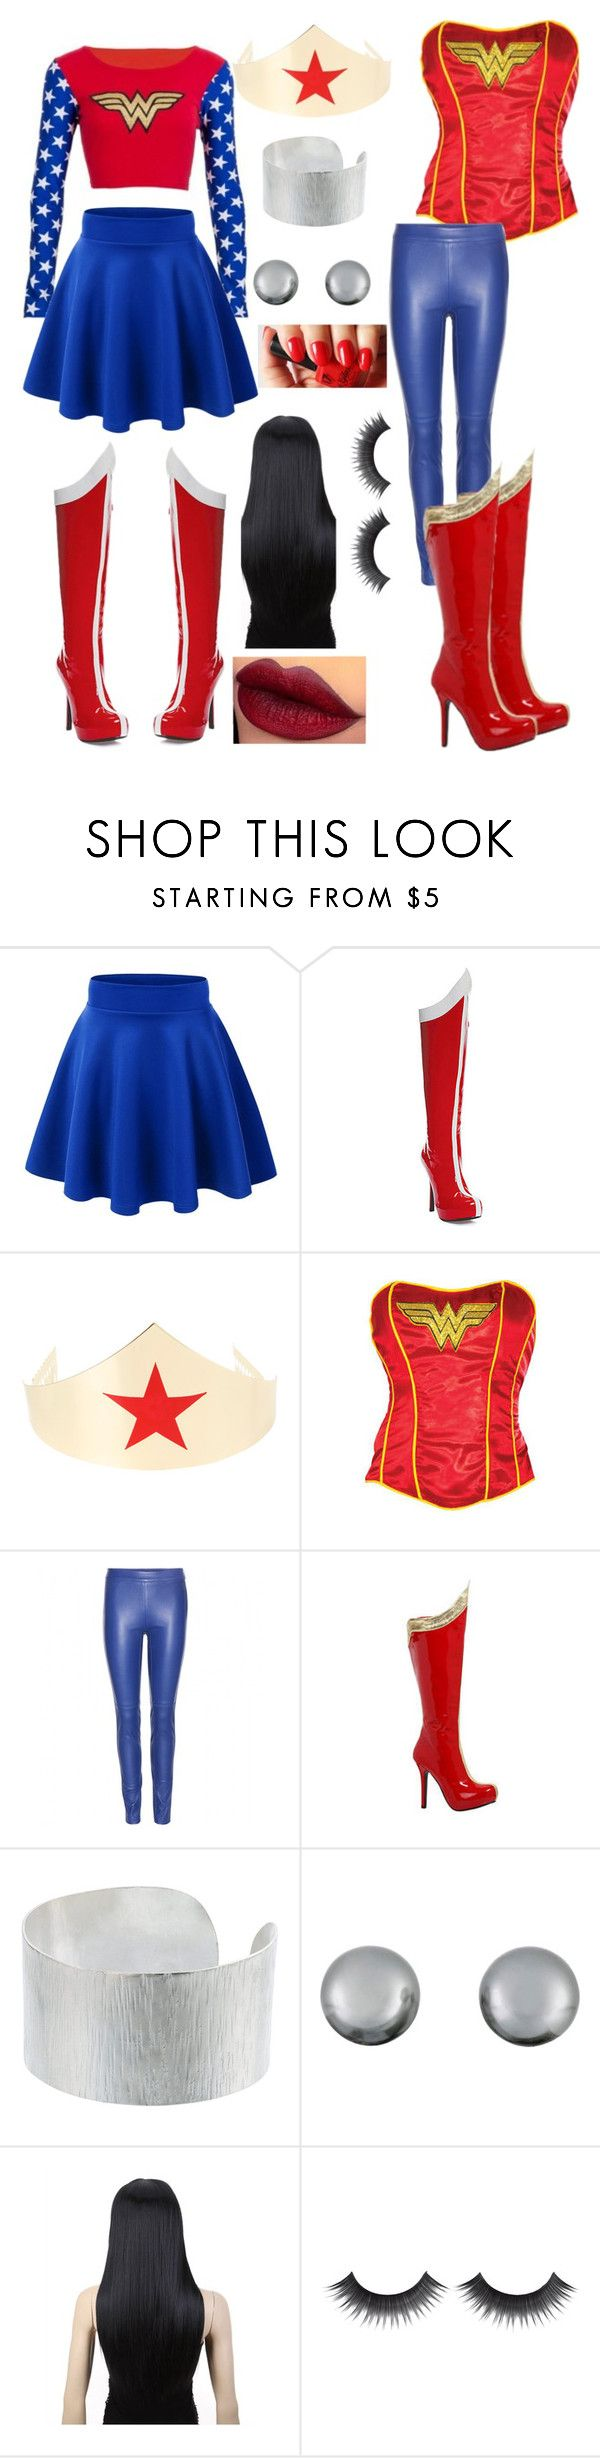 """Wonder Woman Costume"" by perfectlypinky ❤ liked on Polyvore featuring Emilio Pucci, Jigsaw and Kenneth Jay Lane"